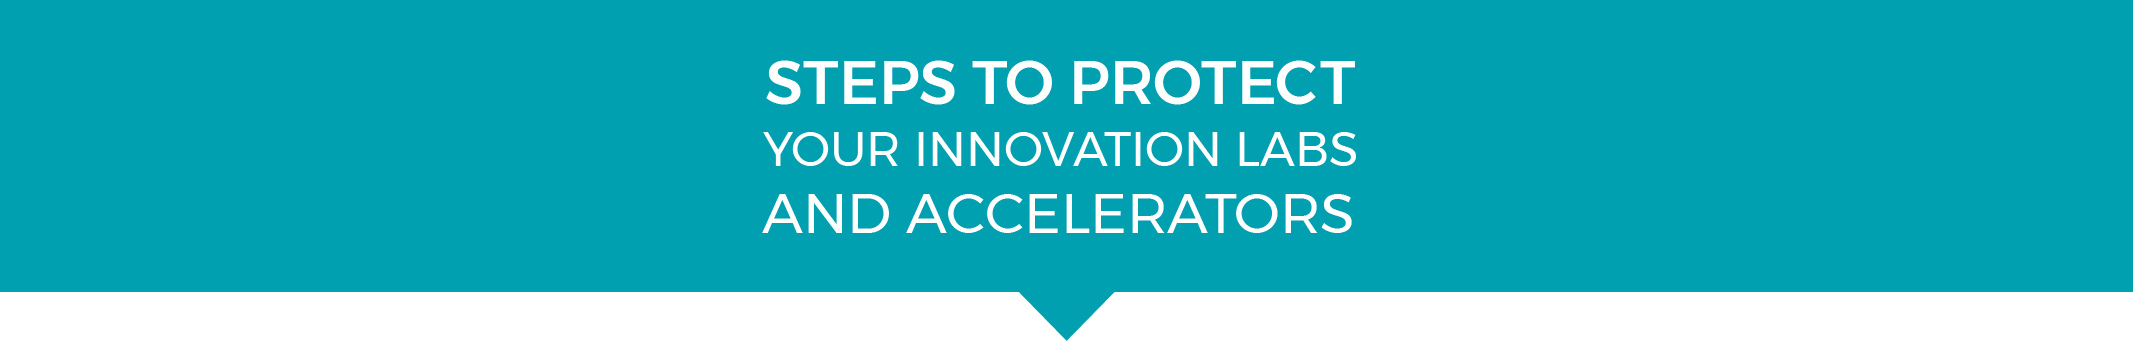 STEPS_TO_PROTECT_YOUR_INNOVATION_LABS_AND_ACCELERATORS